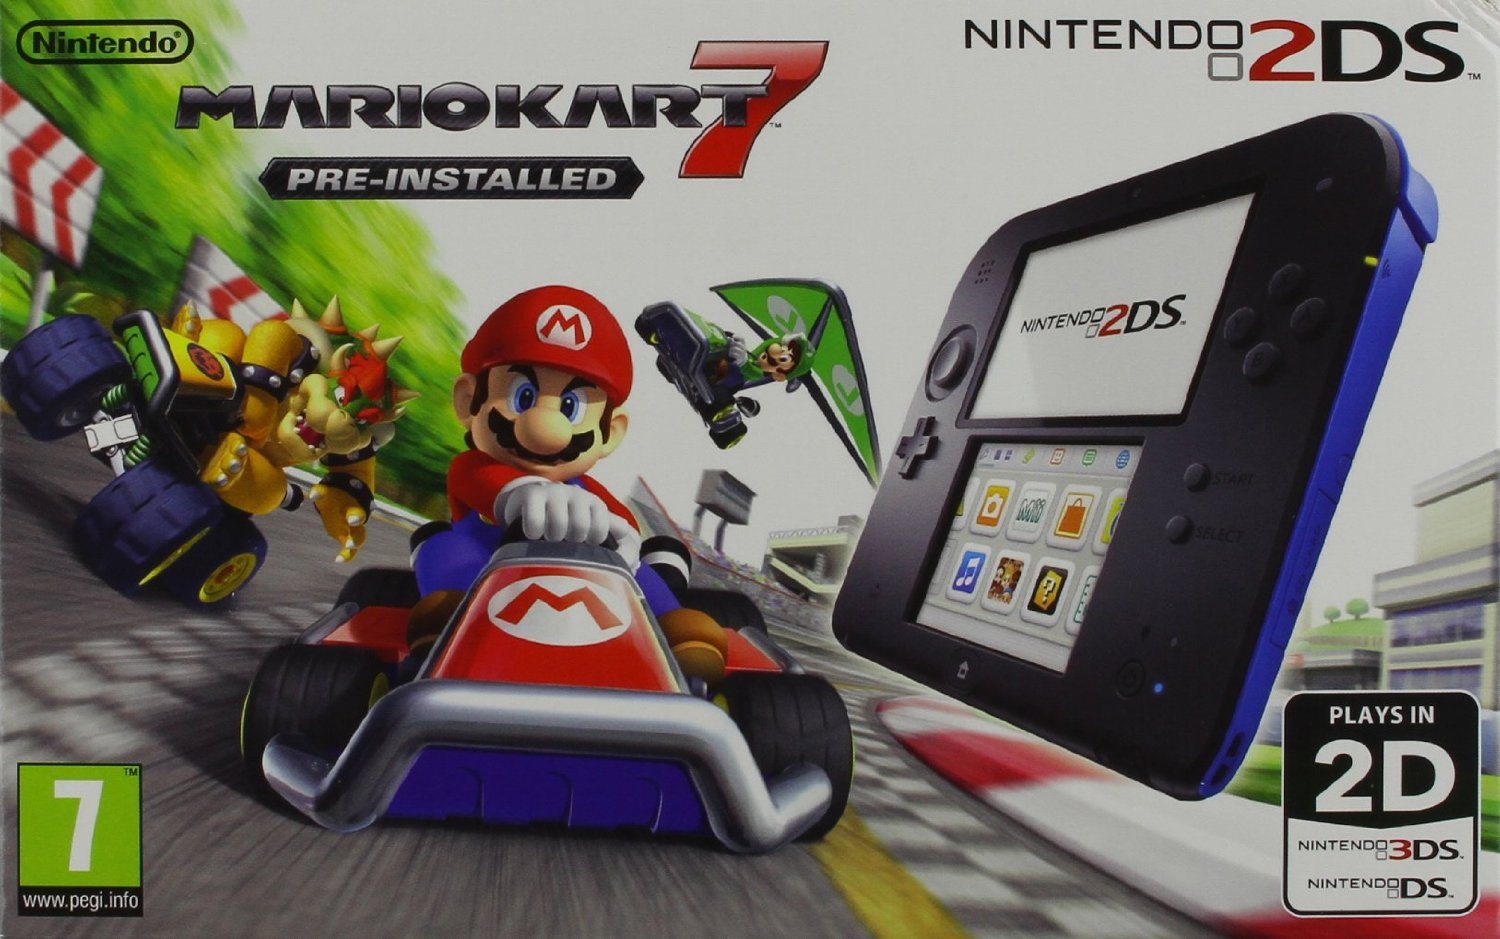 Nintendo 2DS Console with Pre-installed Mario Kart 7 (Black/Blue) (Nintendo 2DS)